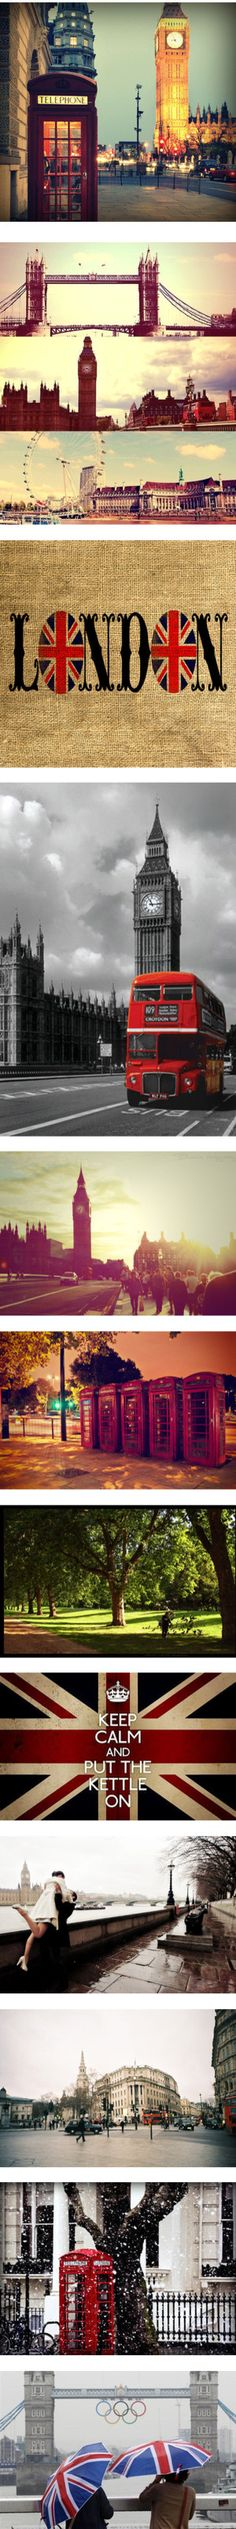 oh what i would give to go to London